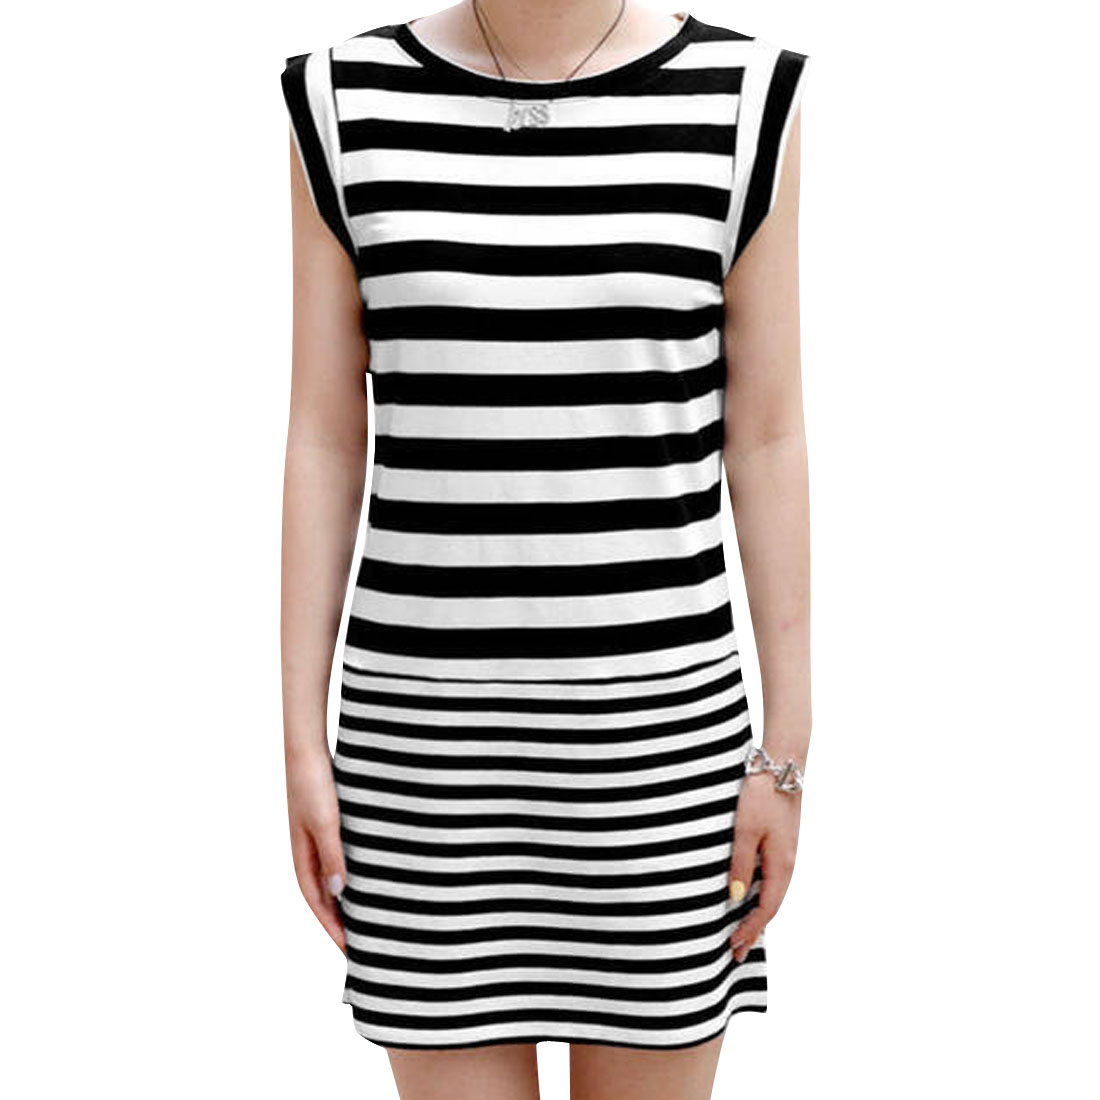 Ladies Stripes Pattern Sleeveless Bodycorn Elegant Dress White Black S